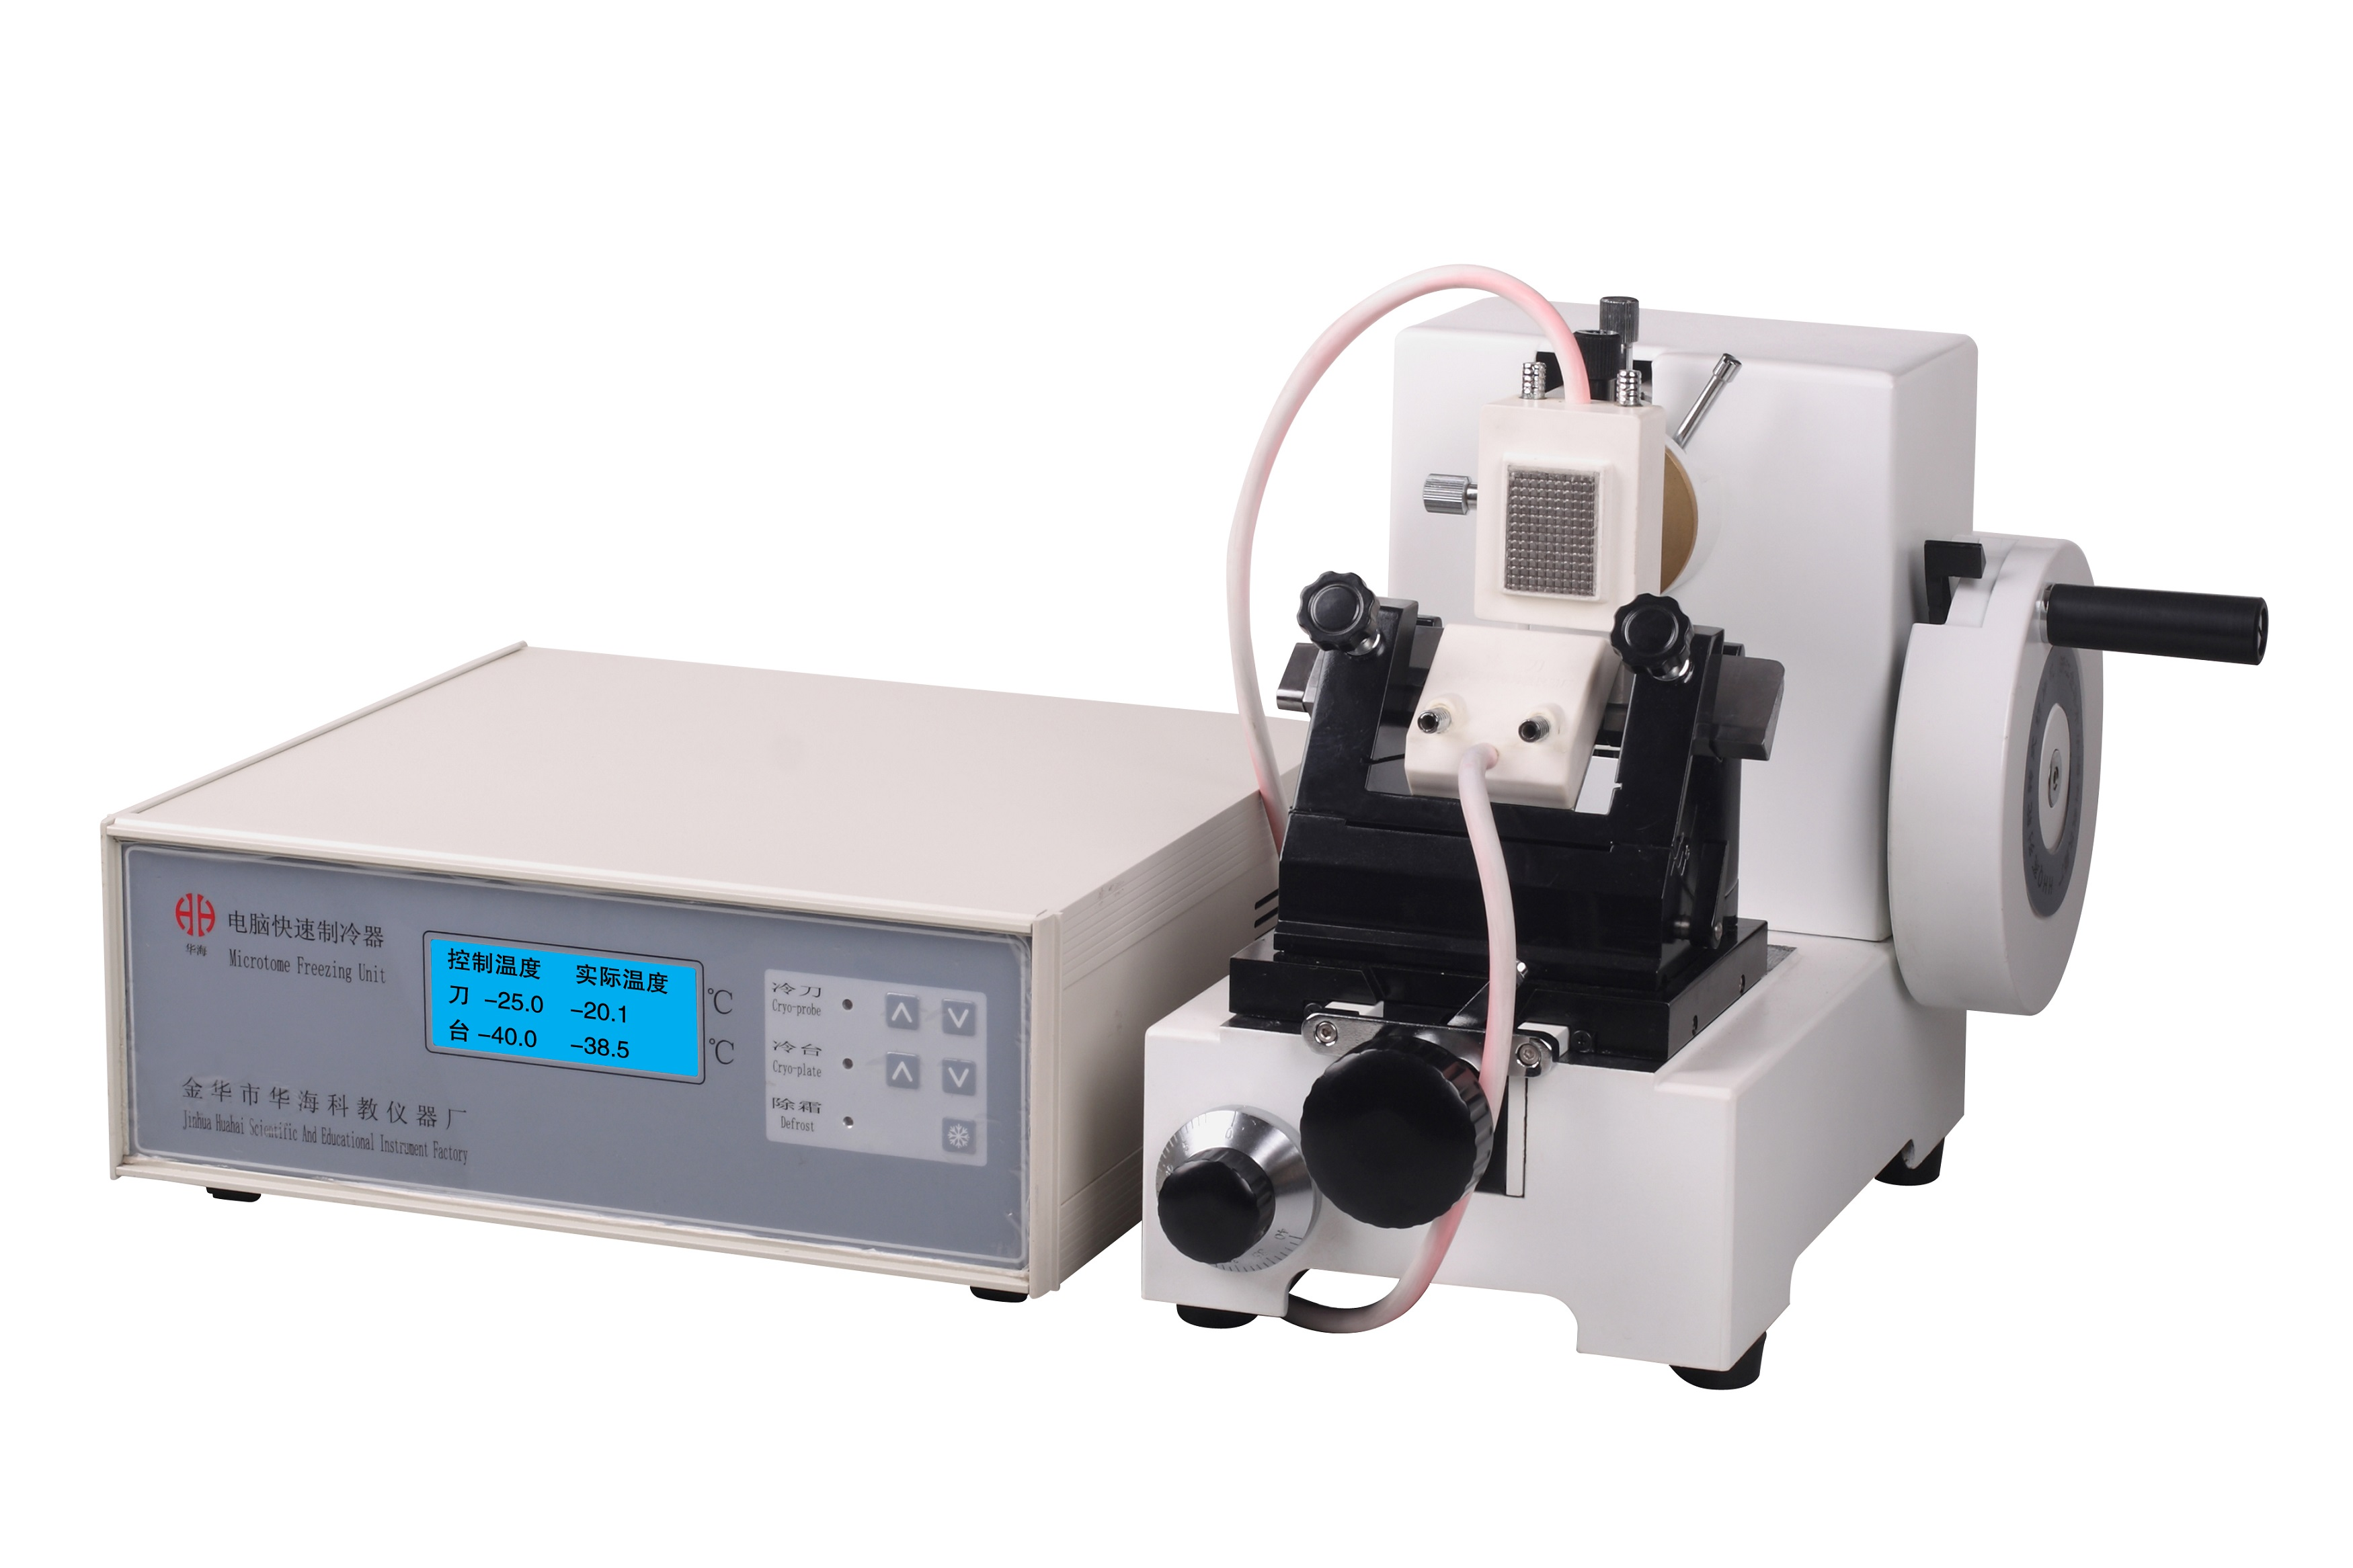 Model HH-2508III Pathological Biological Tissue Microtome with Computer Controlled fast freezing